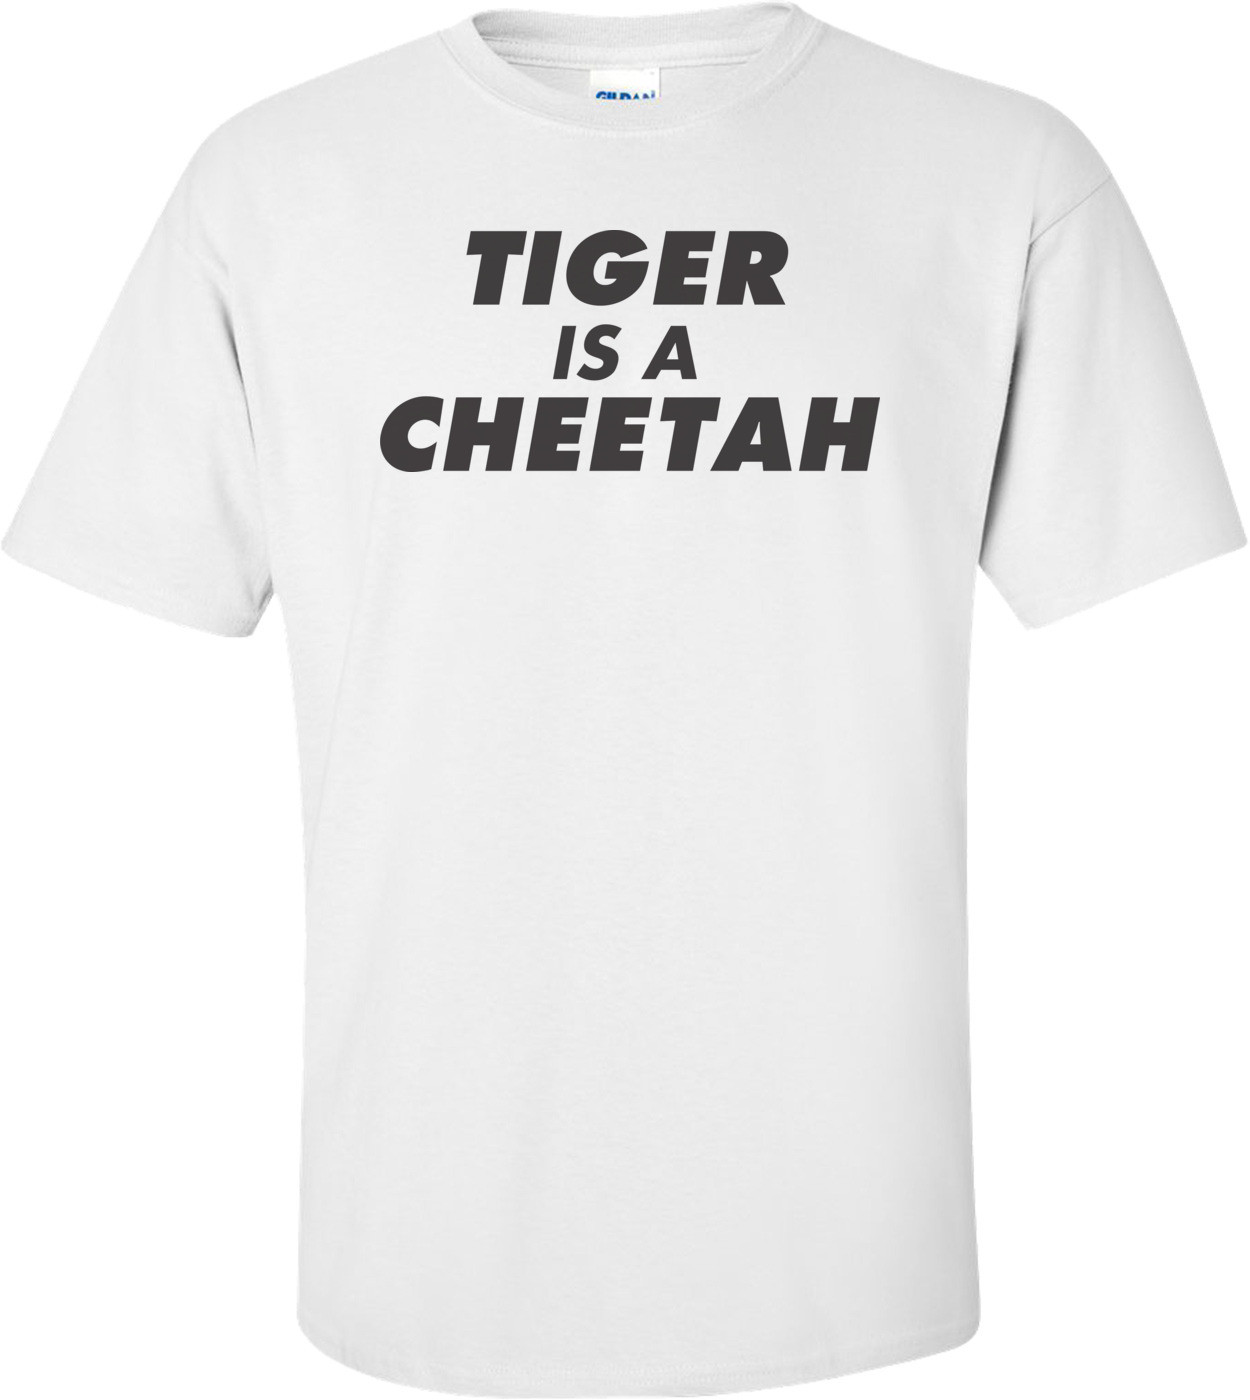 Tiger Is A Cheetah T-shirt